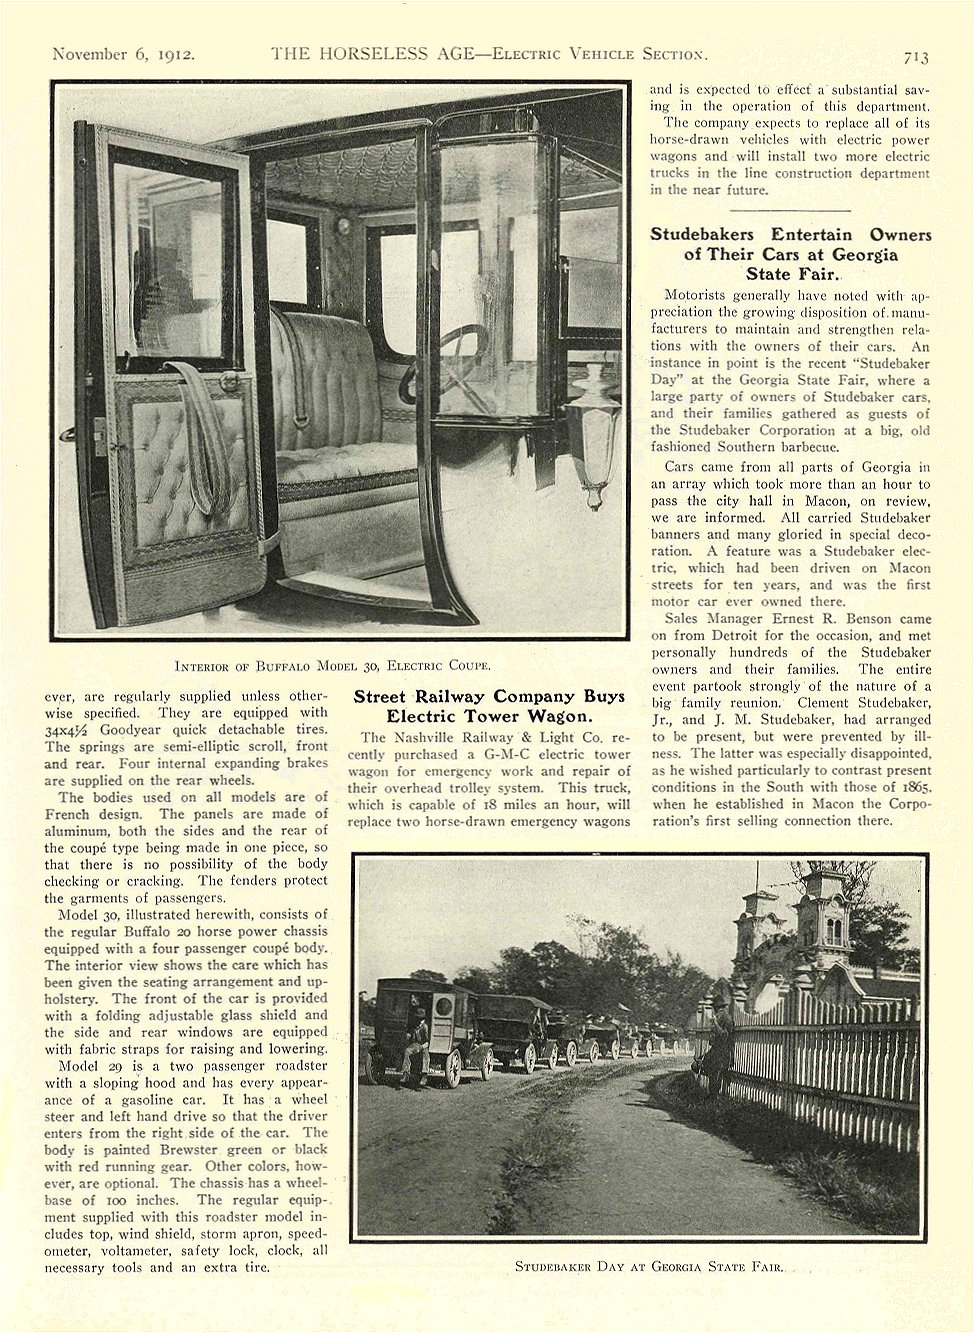 1912 11 6 BUFFALO Electric Article Buffalo Electrics Reveal New Features Interior of Buffalo Model 30, Electric Coupe THE HORSELESS AGE November 6, 1912 University of Minnesota Library 8.5″x11.5″ page 713